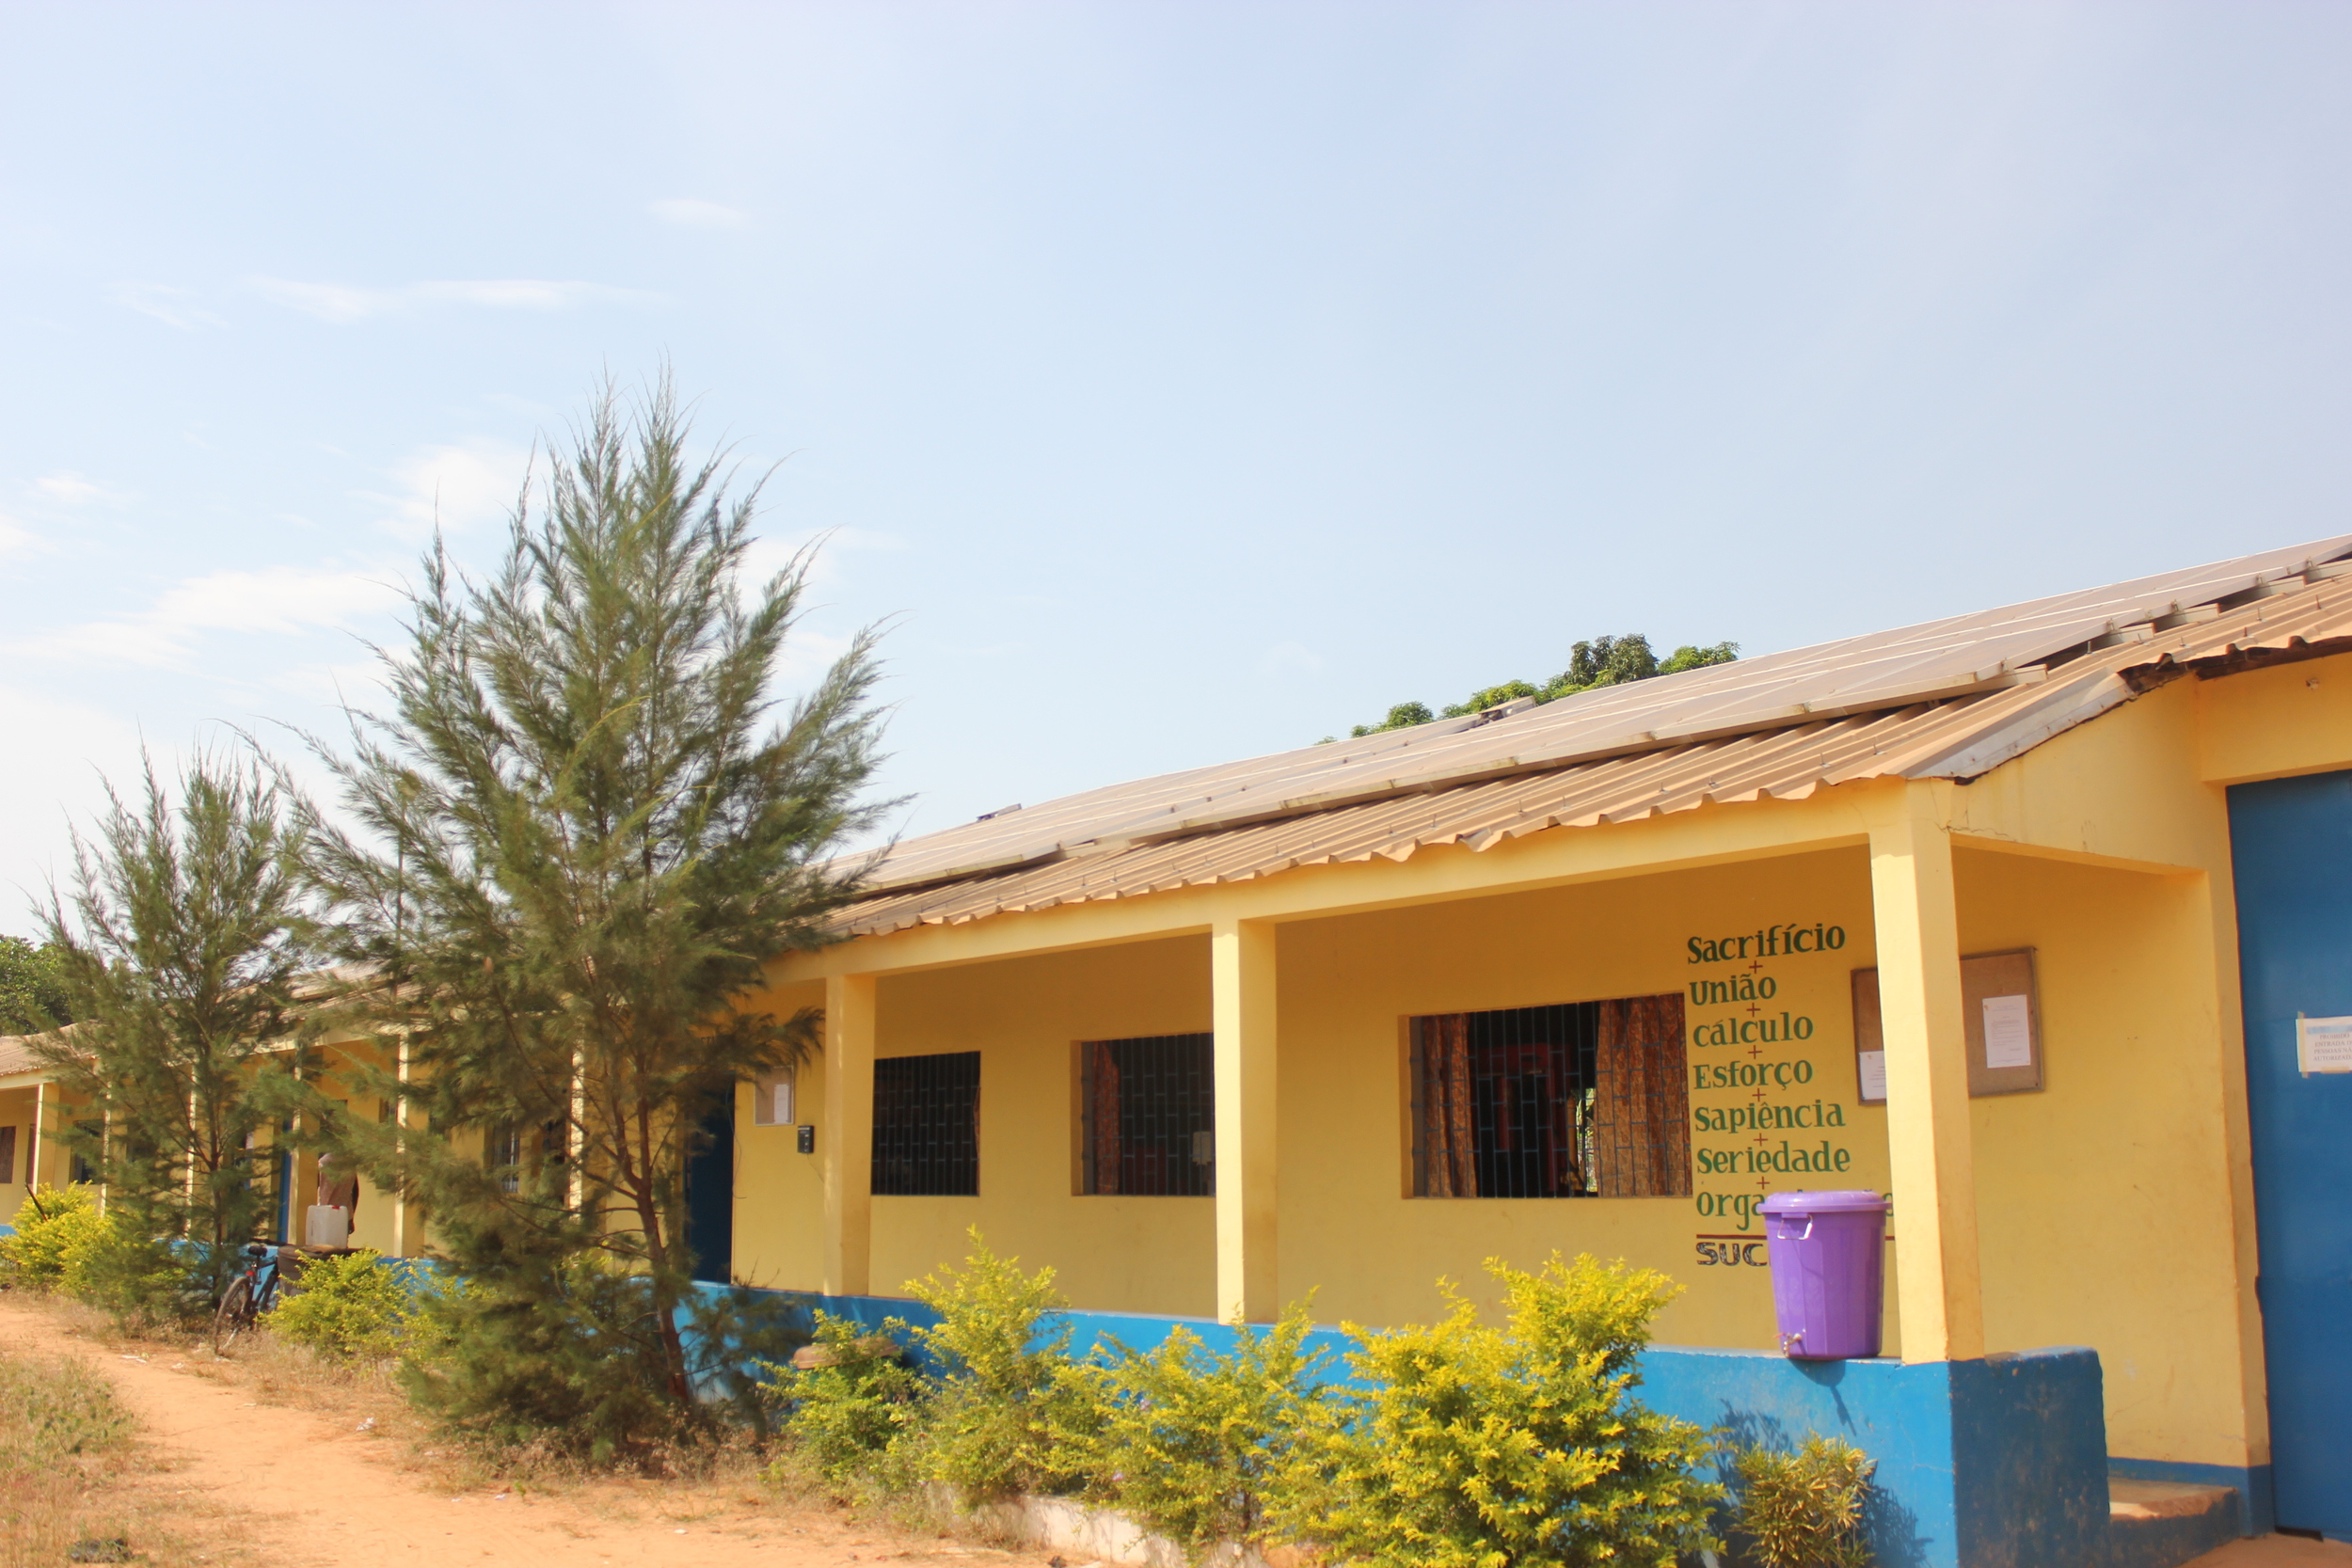 The WAVS School has served more than 1,000 students since opening in 2006.